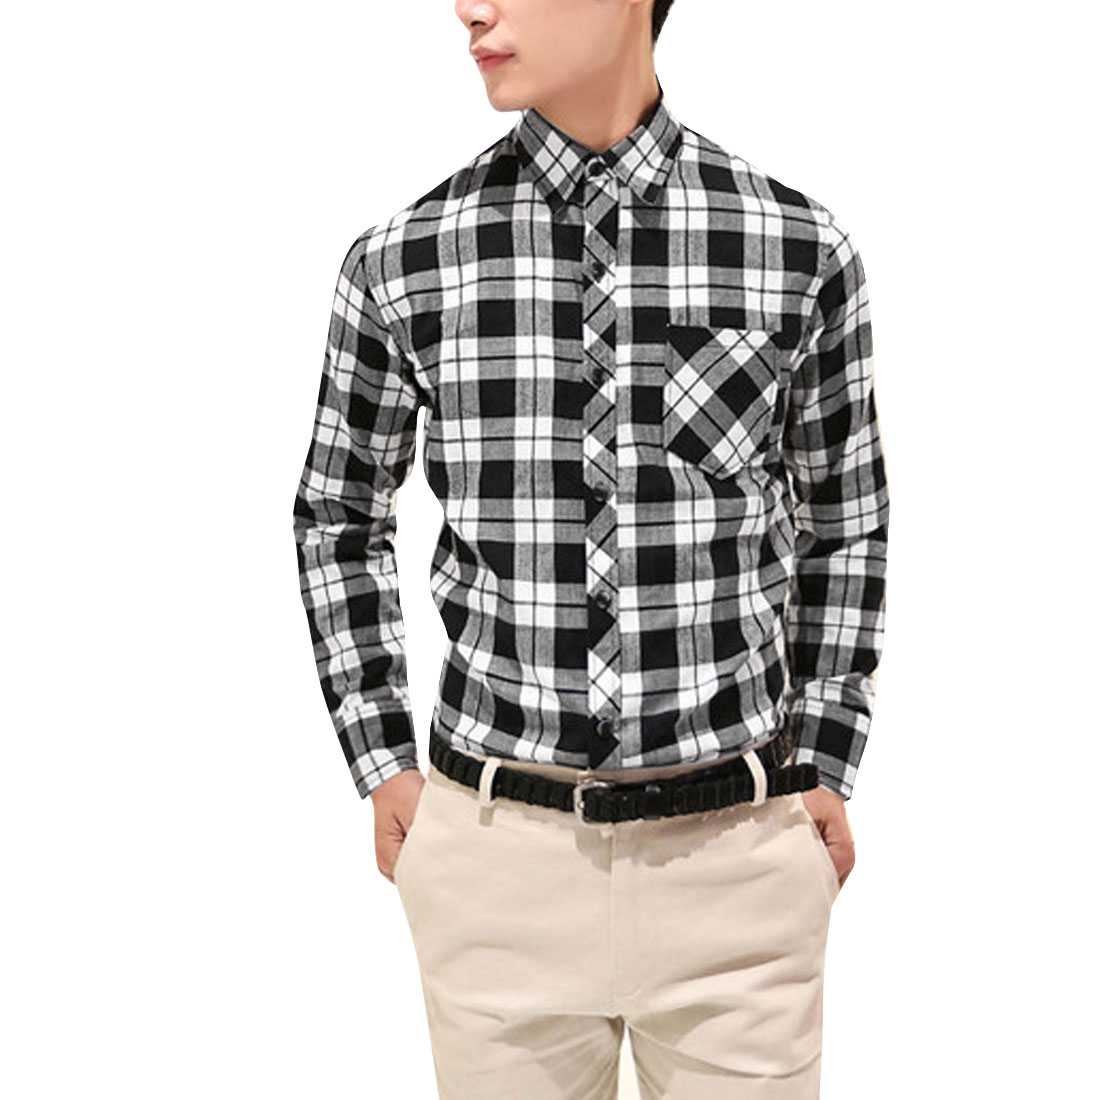 Man Point Collar Single Breasted Plaid Long Sleeve Top Black Shirt S